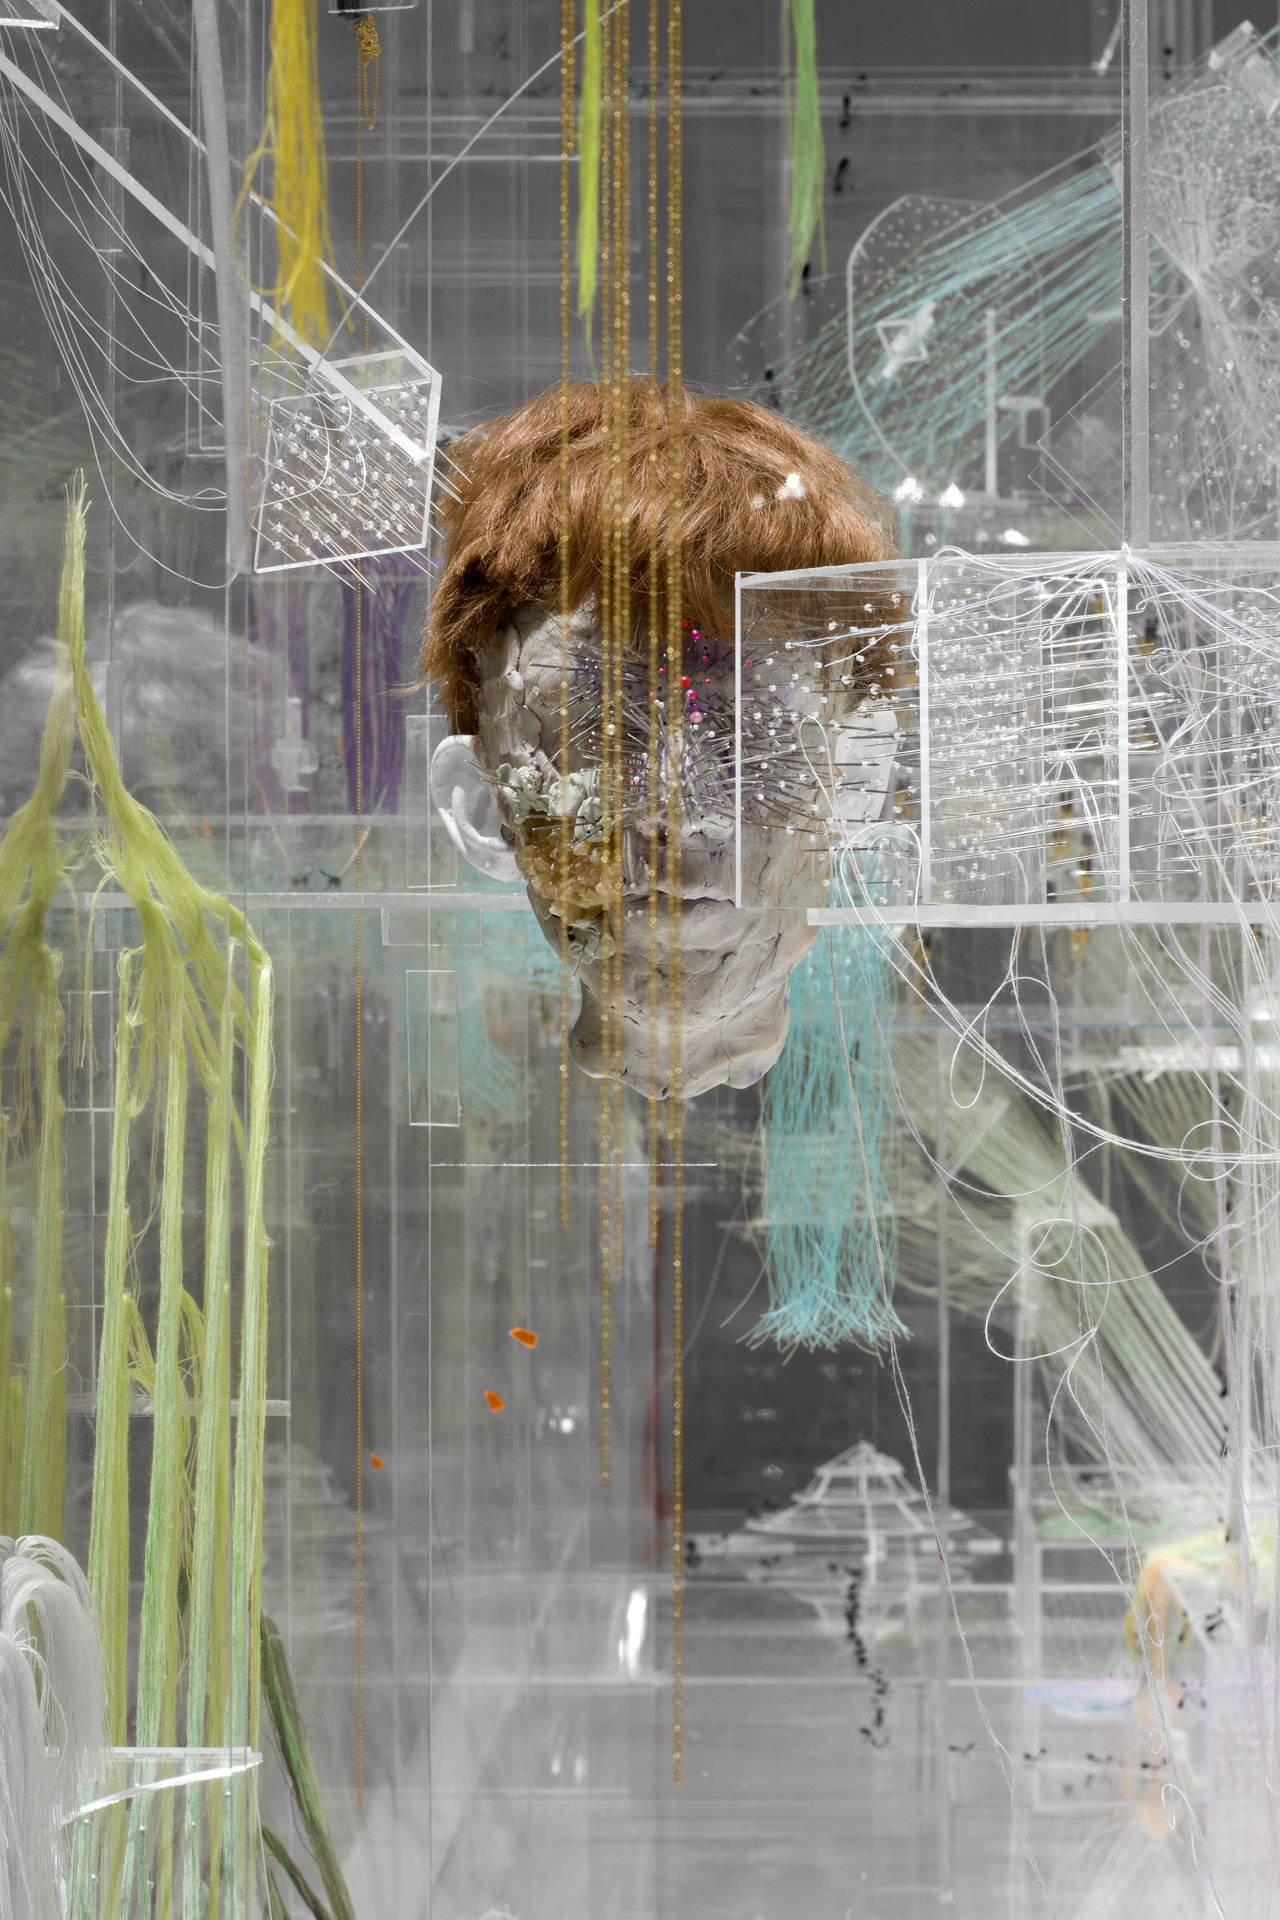 """David Altmejd, """"The Swarm"""" (2011) (photo by Farzad Owrang, image courtesy of The Brant Foundation Art Study Center)"""